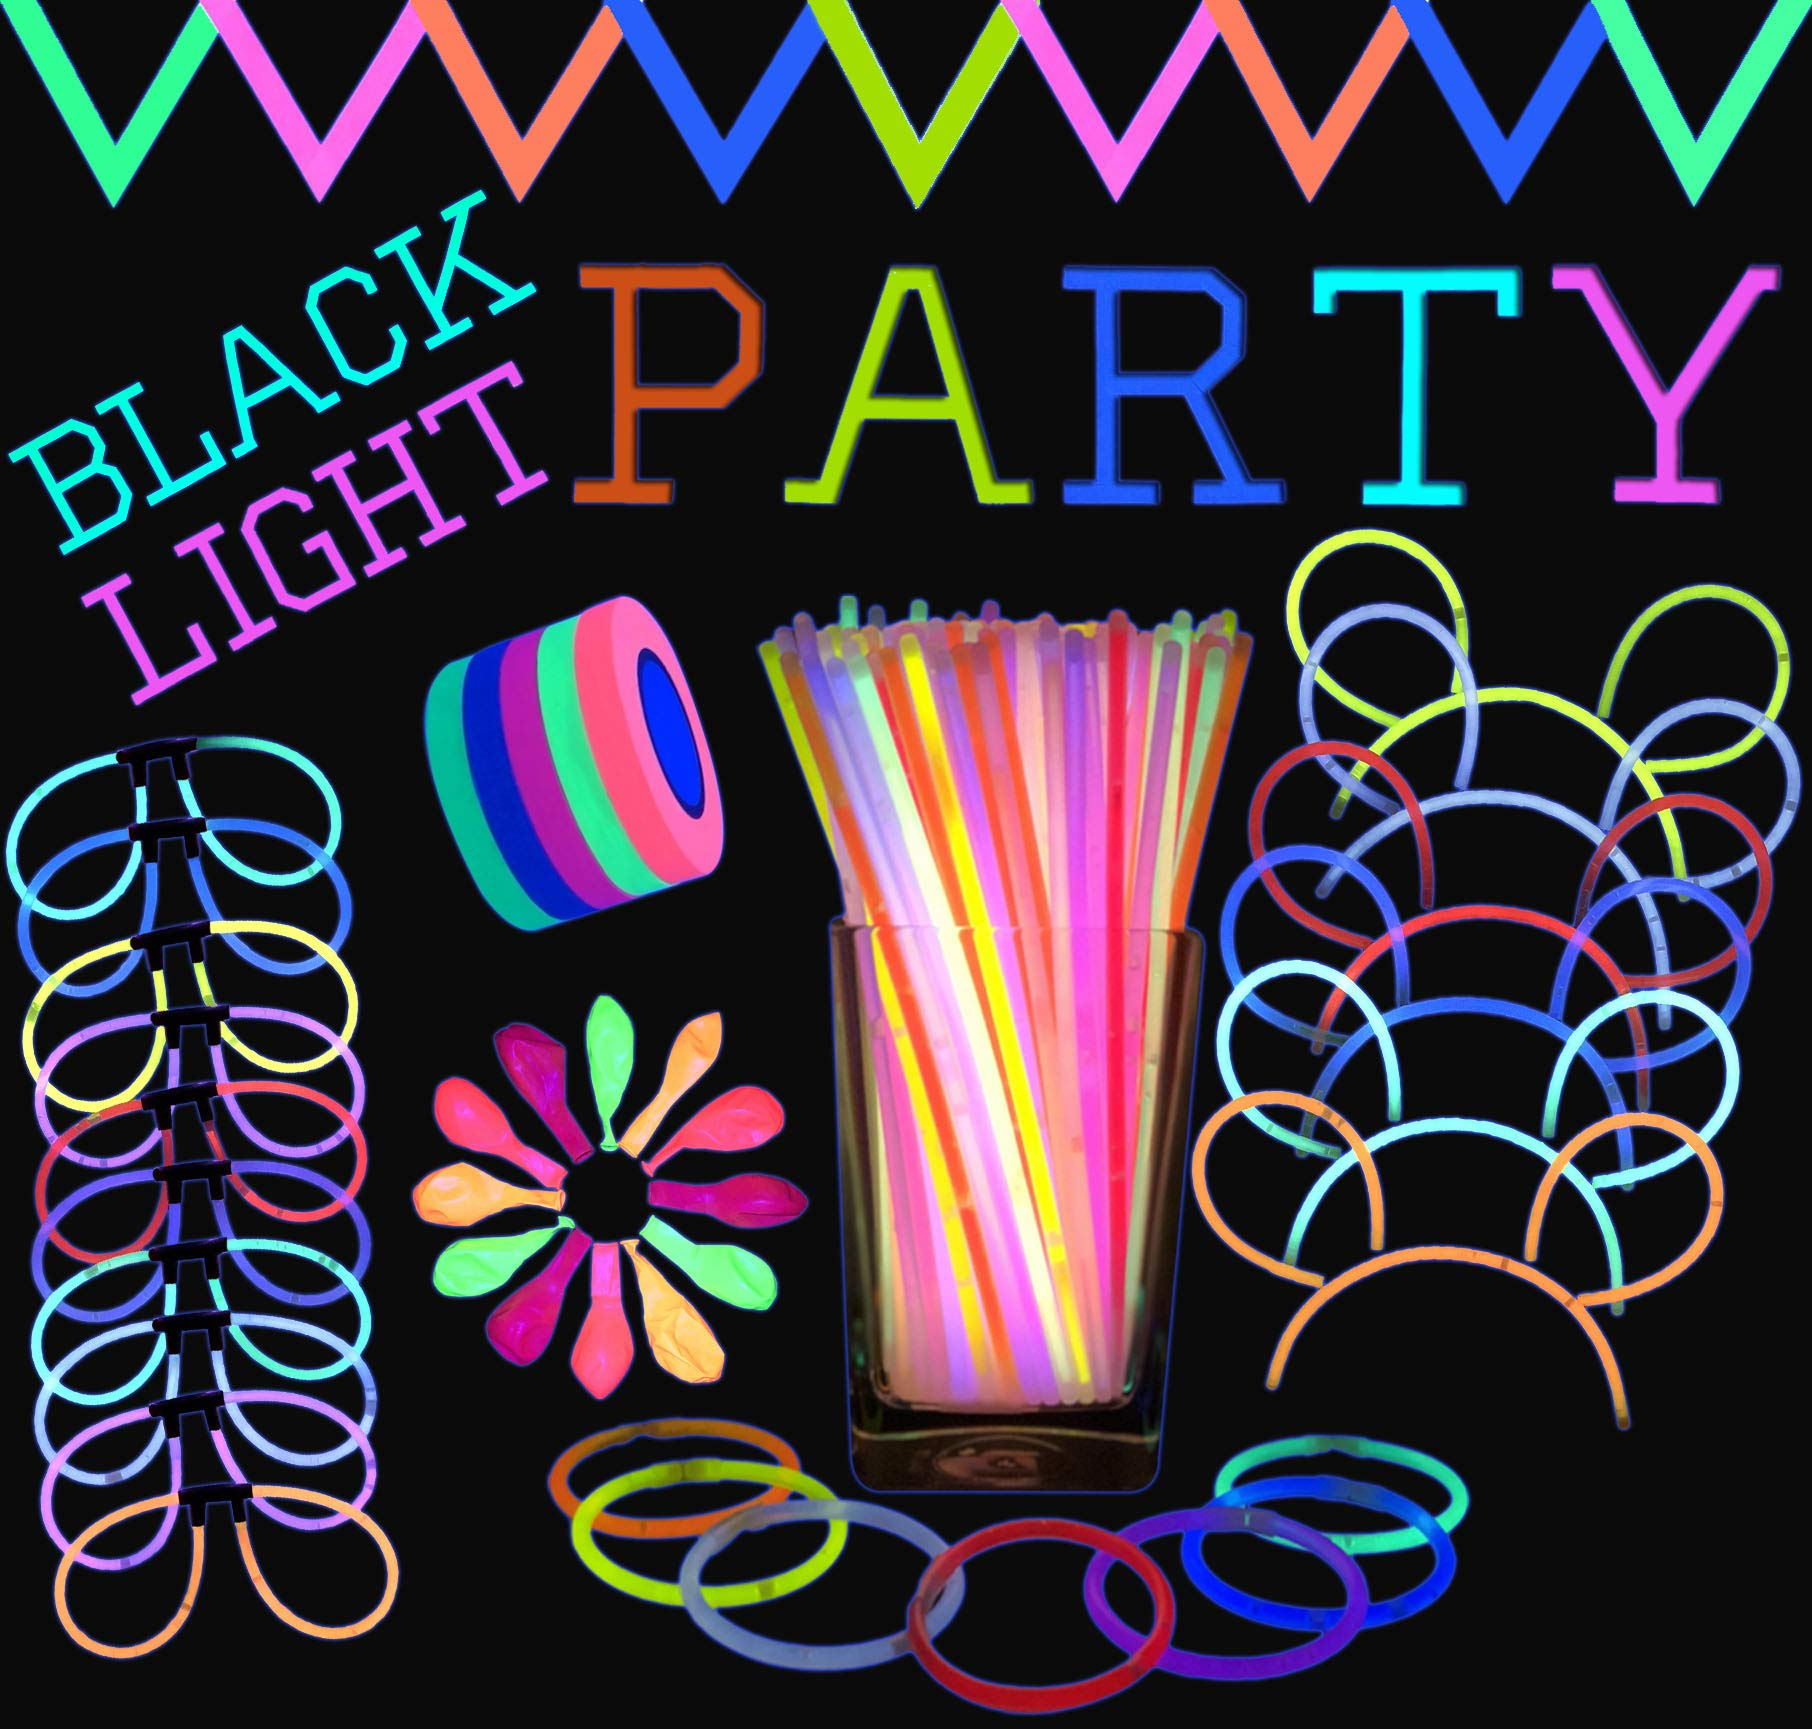 All-Inclusive Glow Party Supplies Bundle - 100 x 8'' Glow Sticks, 100 x Connectors, 25 x 11'' Blacklight Neon Balloons & 250ft of UV Reactive Decorative Tape | (Ultra Violet Light Required)